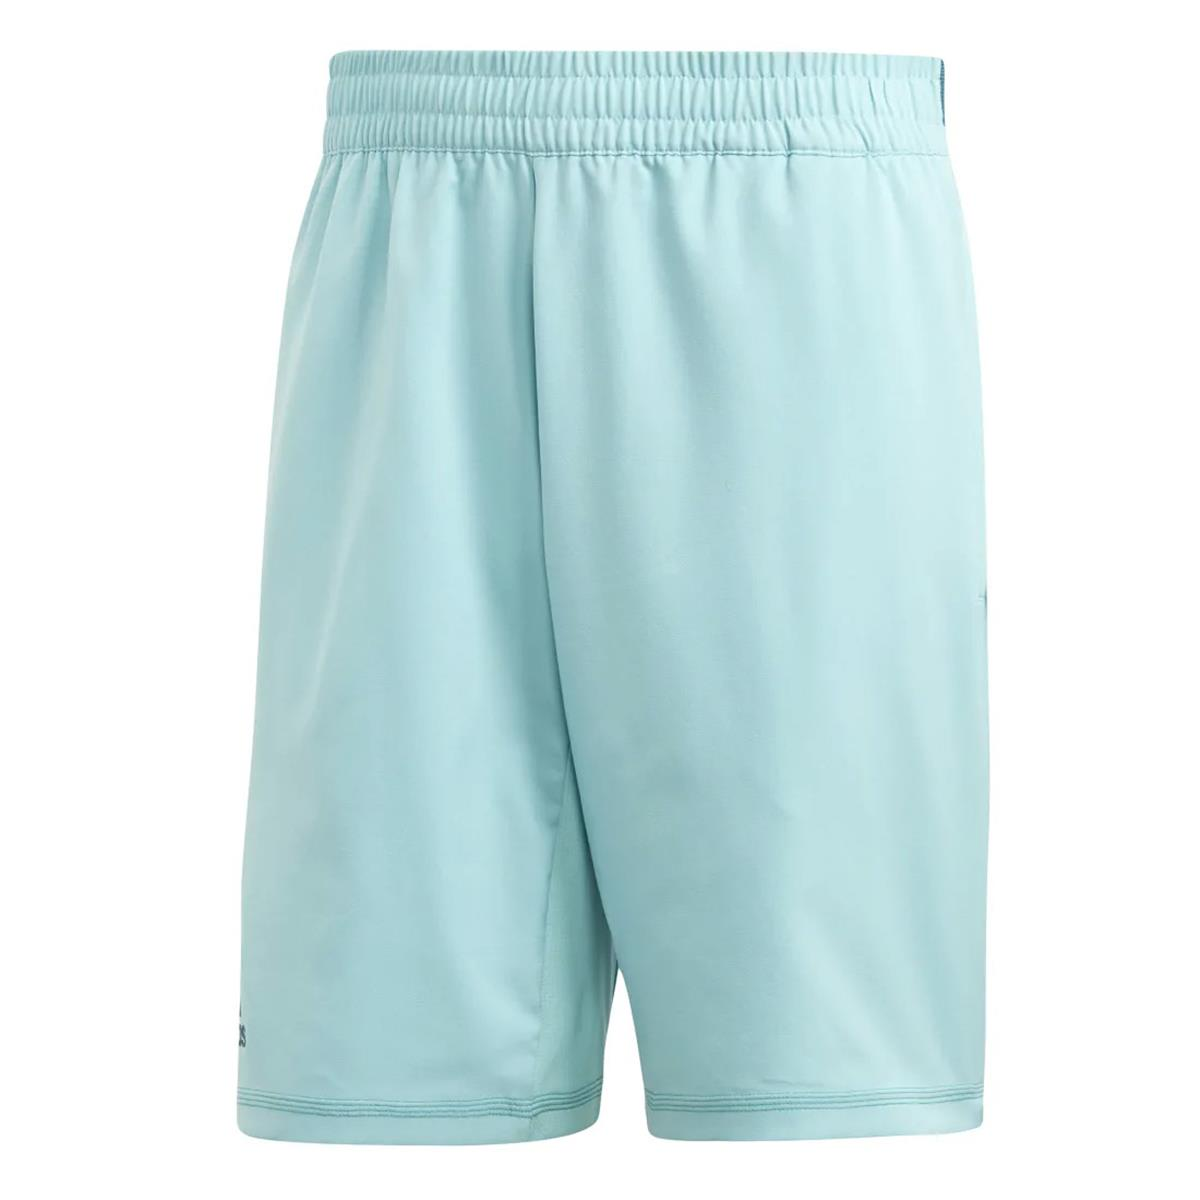 Adidas Parley Mens Shorts